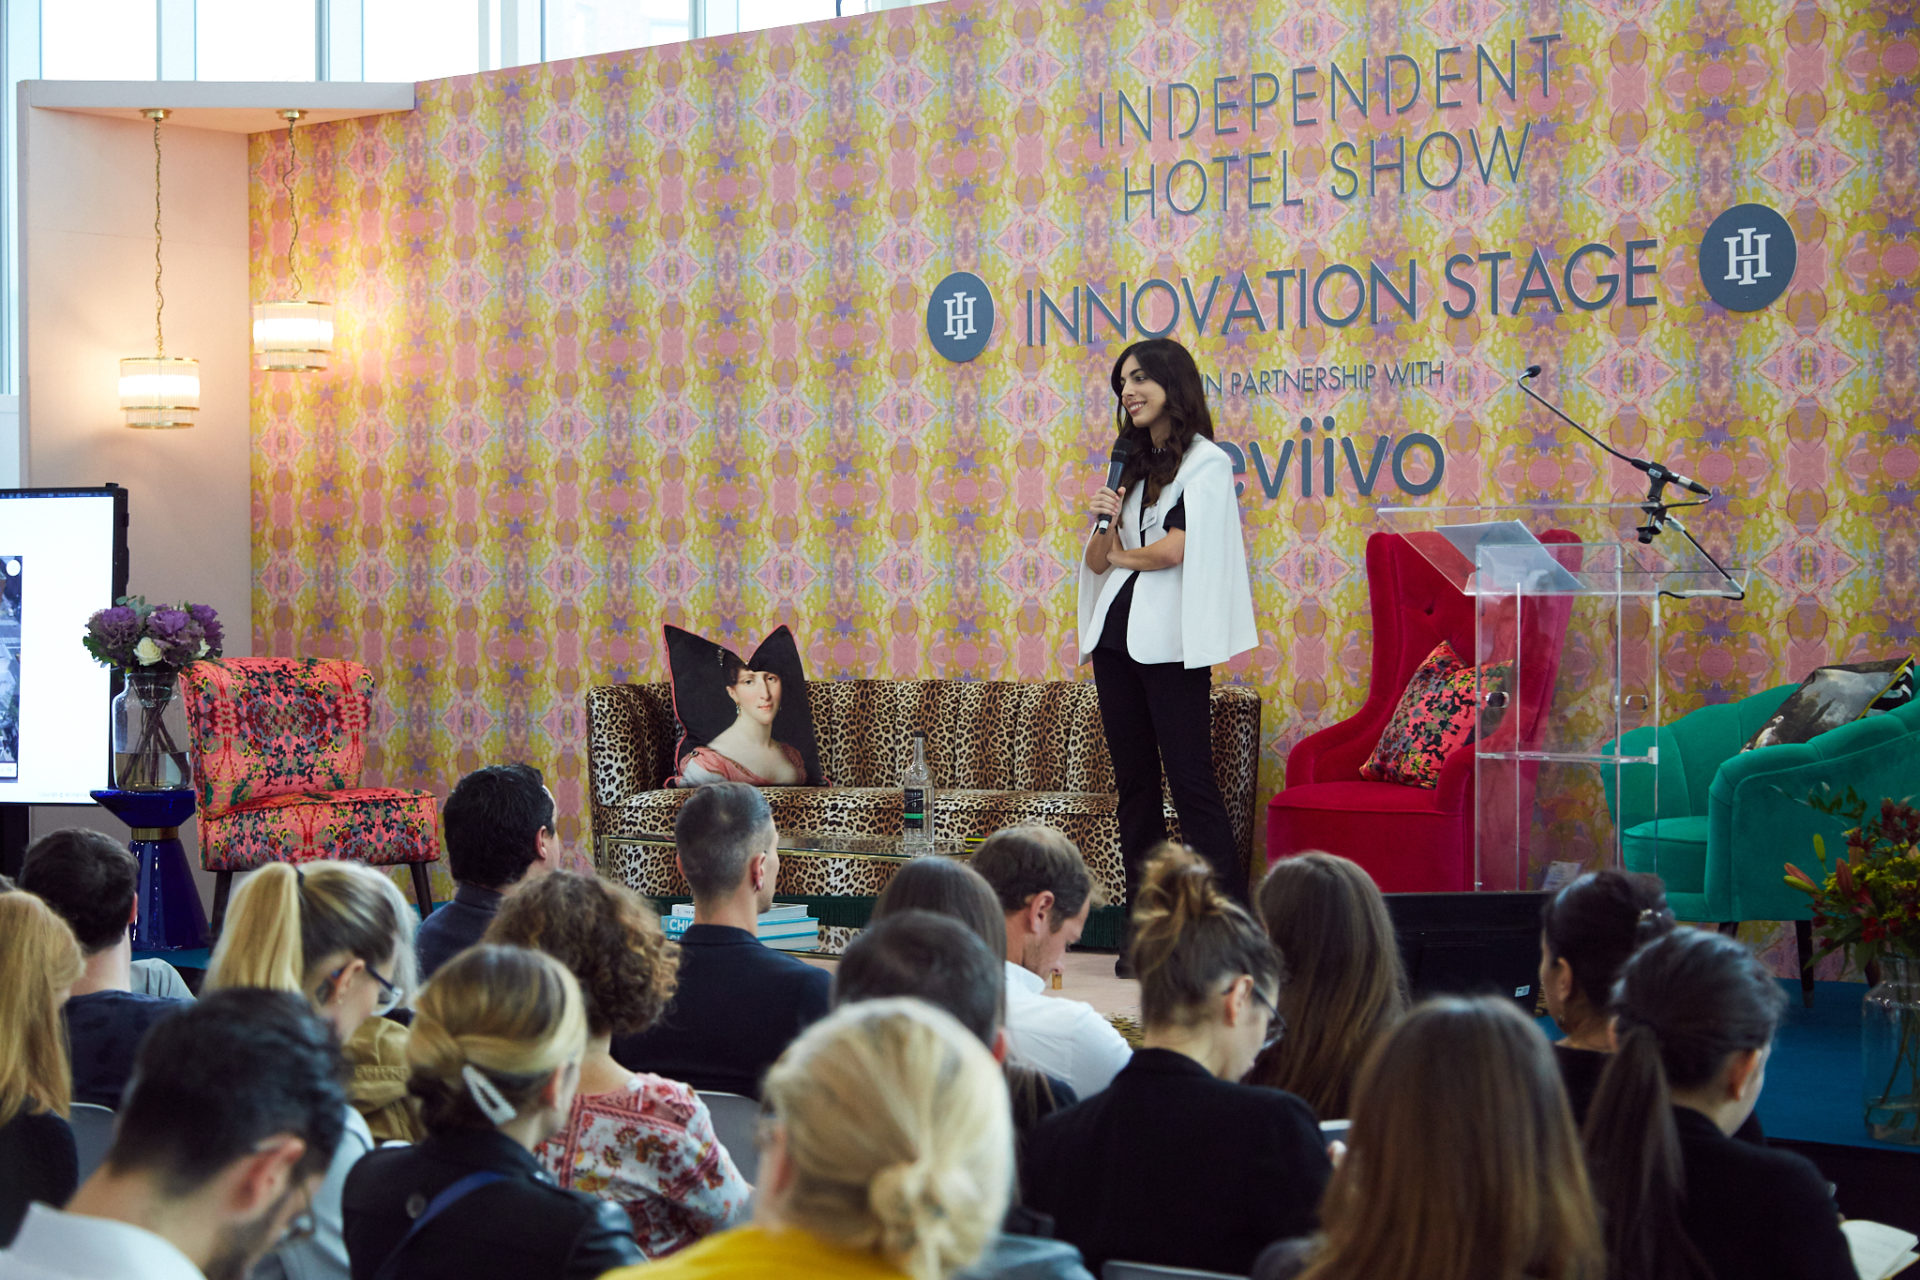 Independent Hotel Show 2019 Innovation Stage